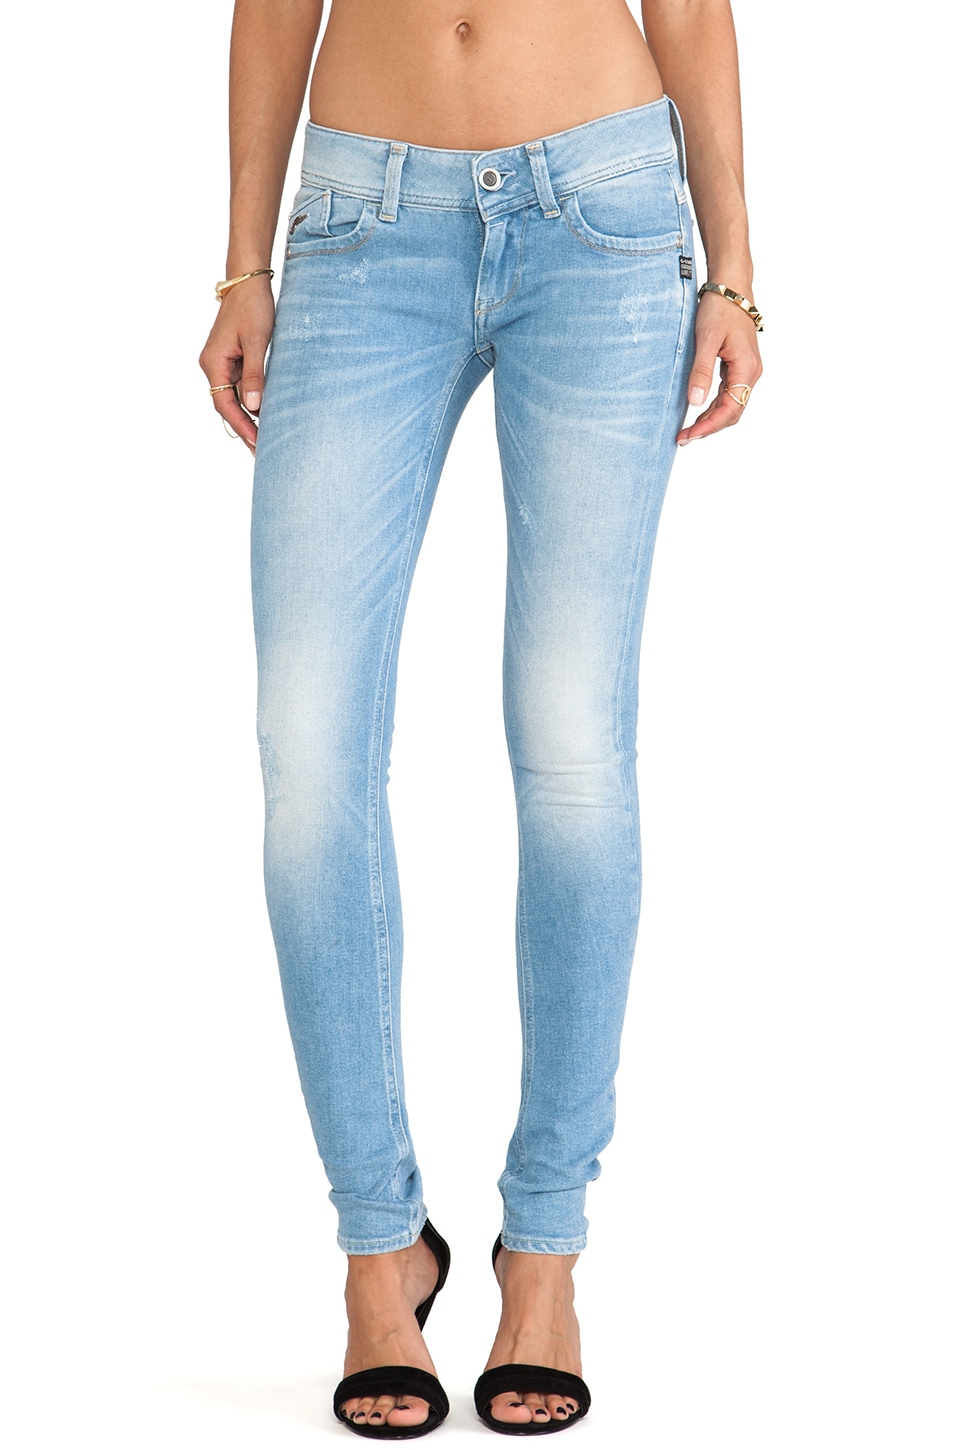 G-Star Lynn Skinny in Weldon Lightt Aged